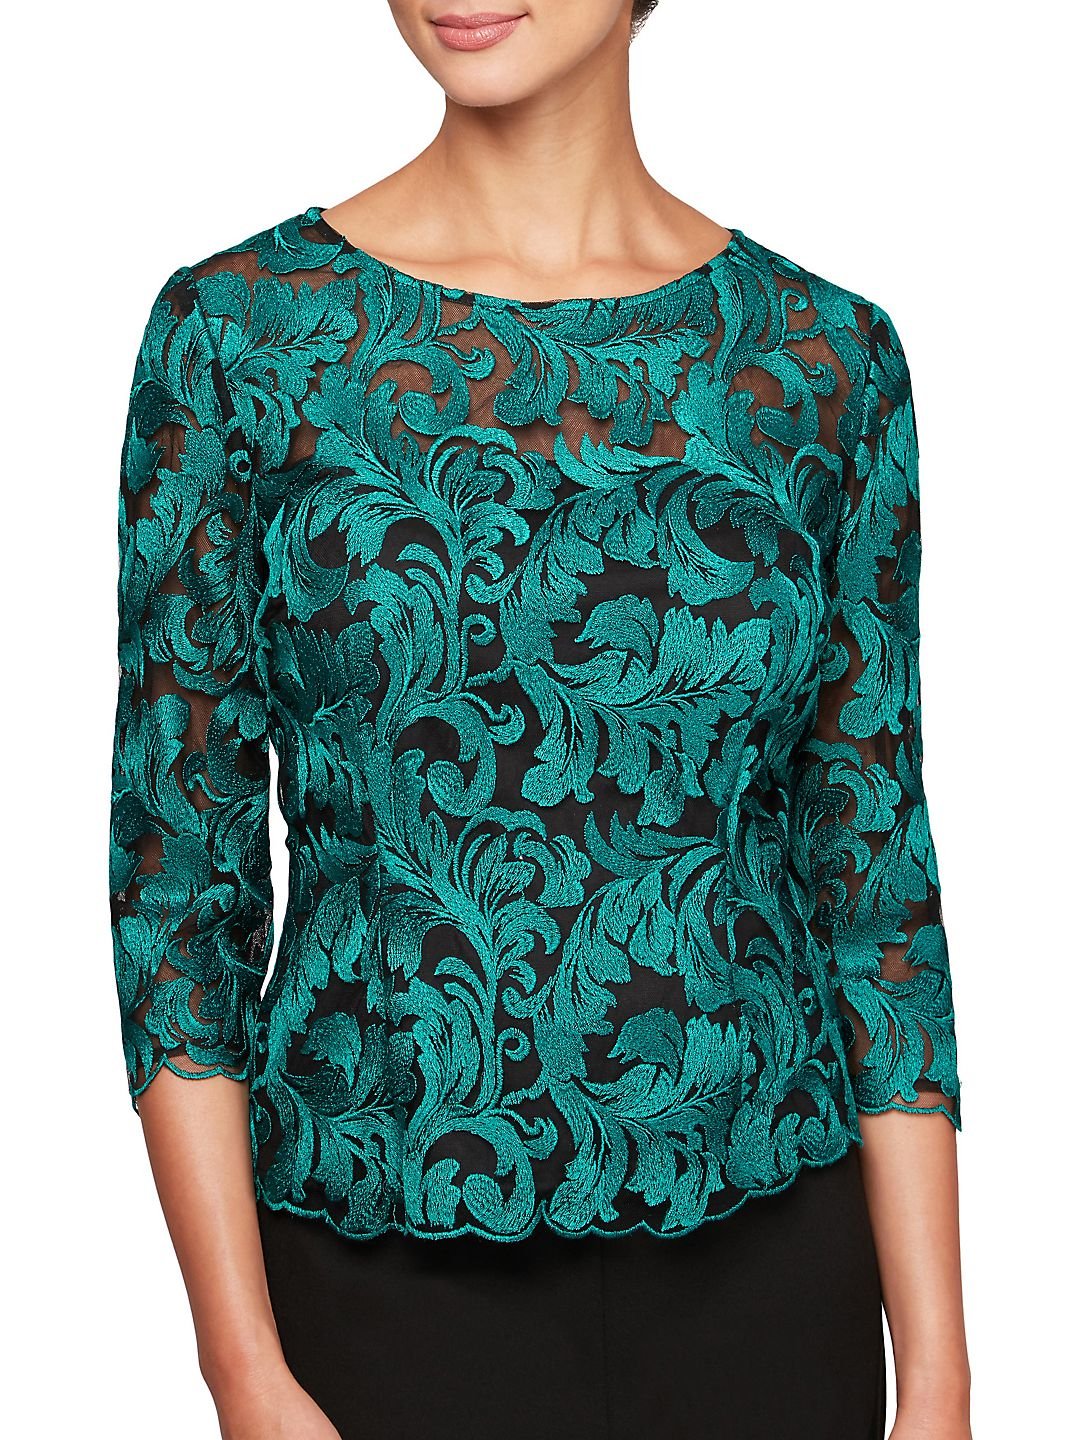 Embroidered Illusion Top